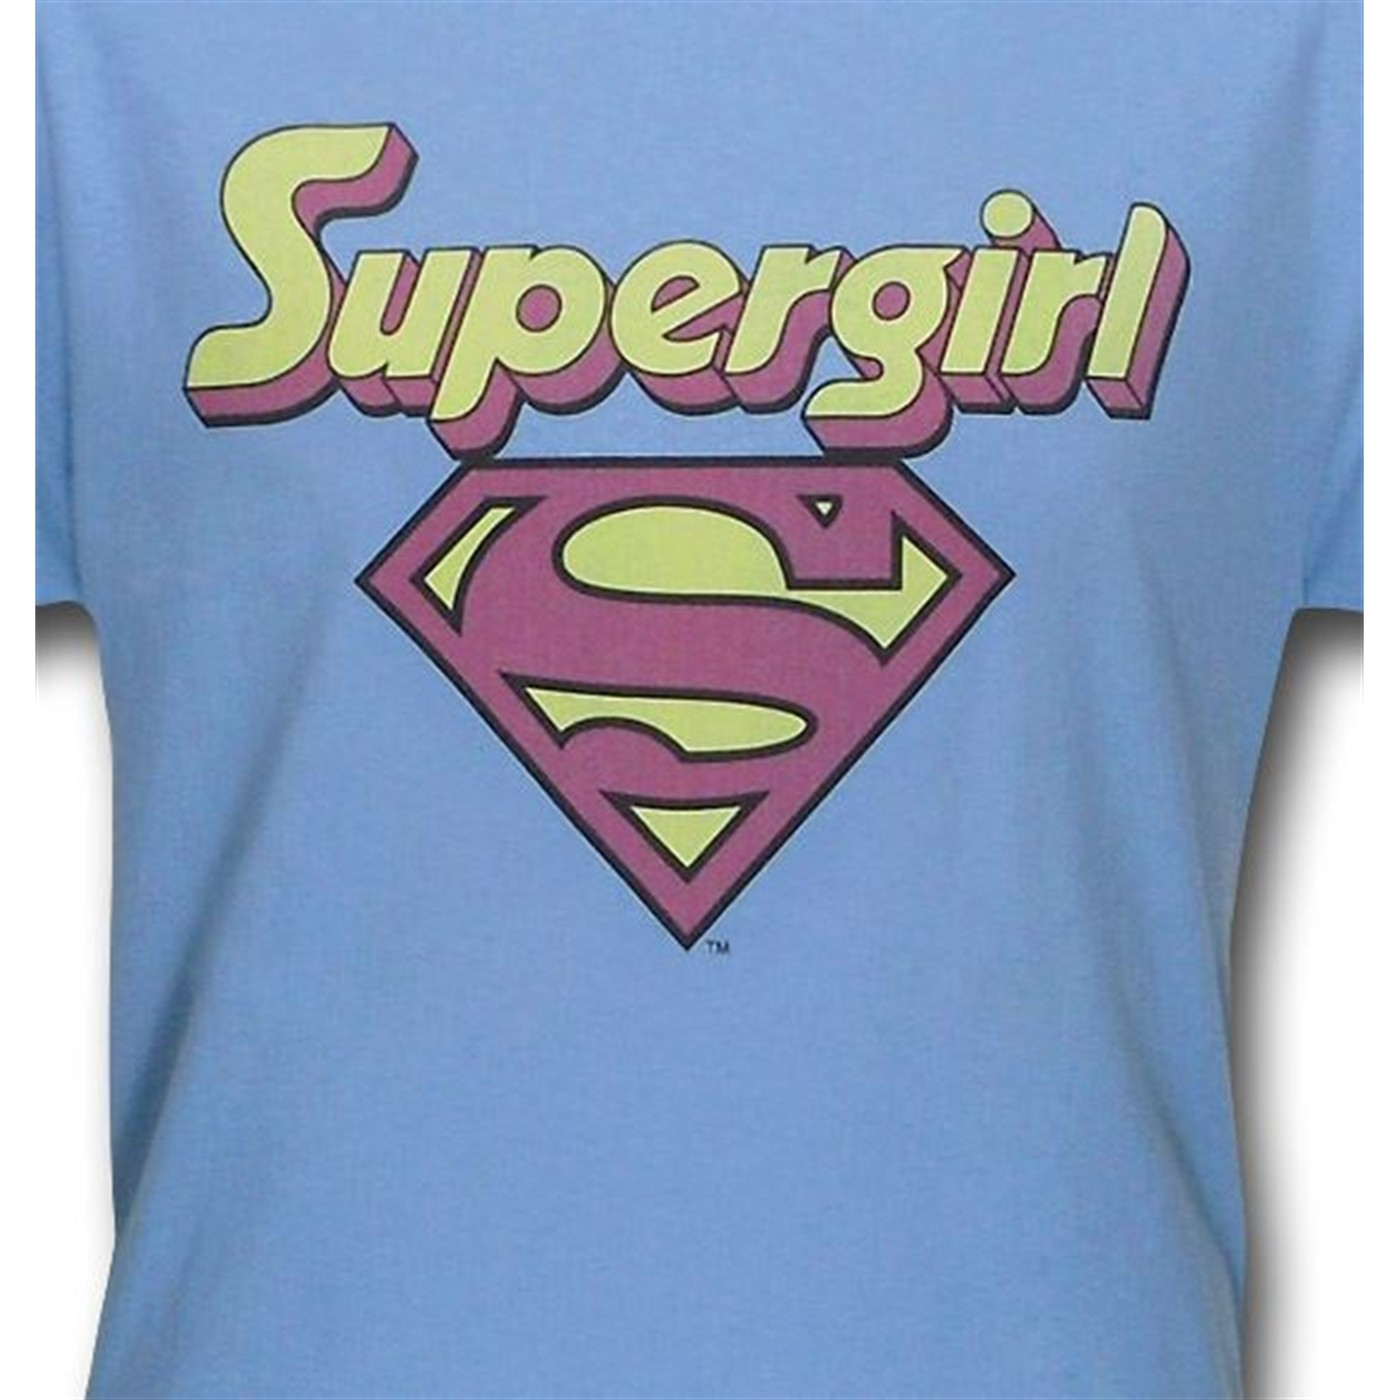 Supergirl Logo and Symbol T-Shirt